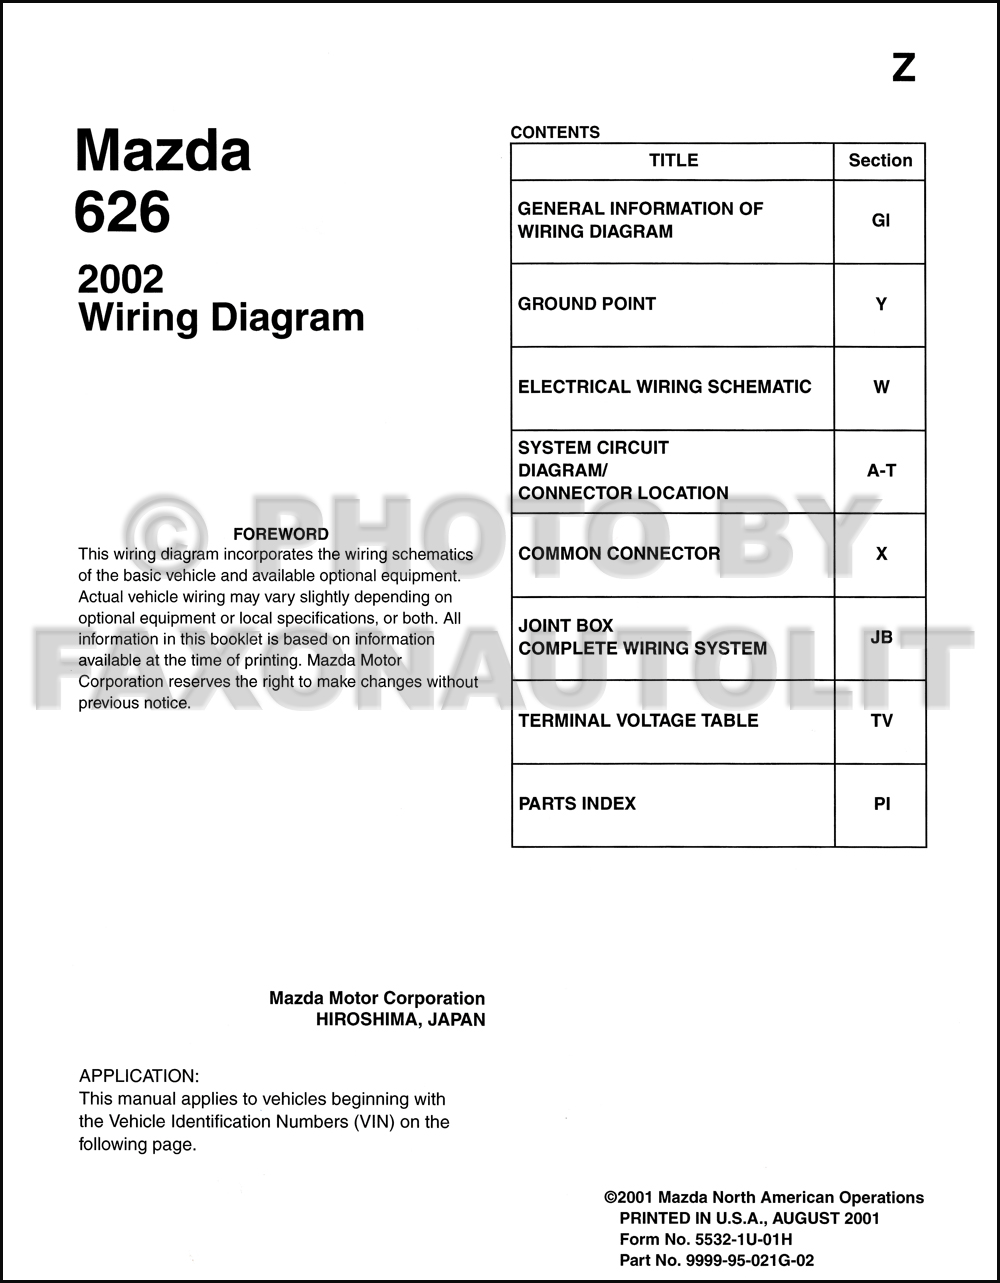 2002 Mazda 626 Wiring Diagram Manual Original. click on thumbnail to zoom